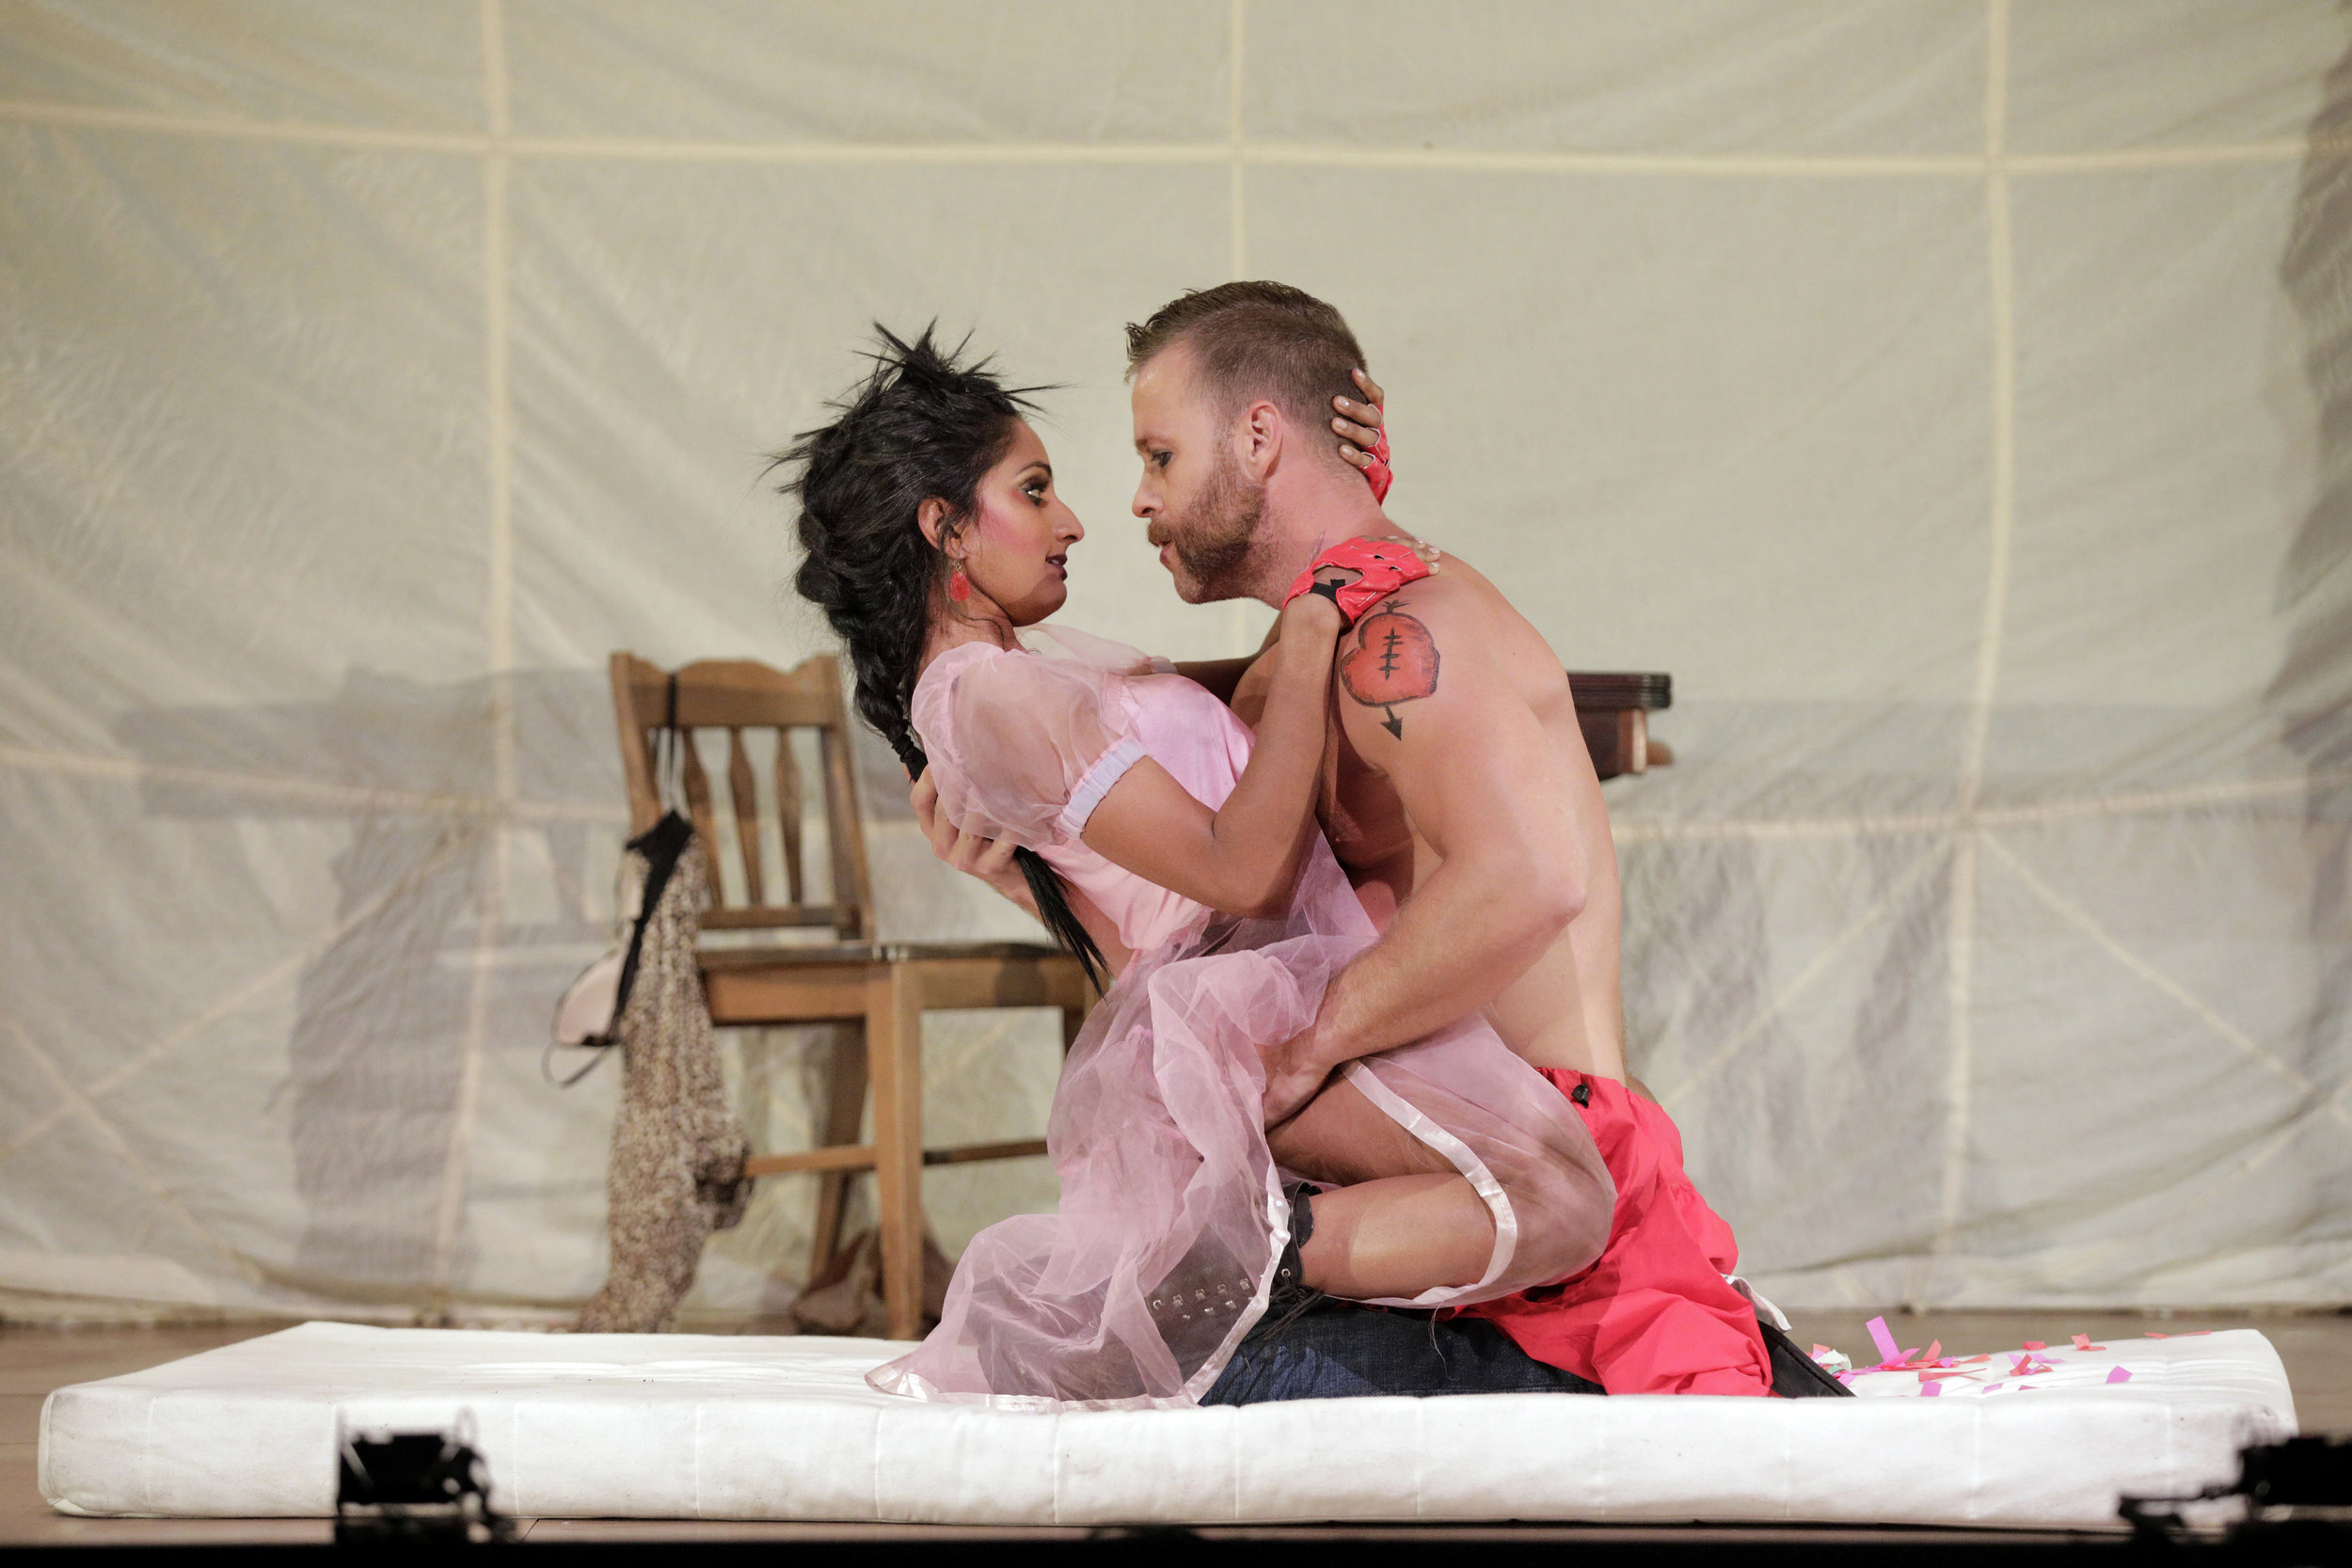 Polly Peachum (Maya Kherani) and Macheath (Derek Chester) in West Edge Opera's production of The Threepenny Opera